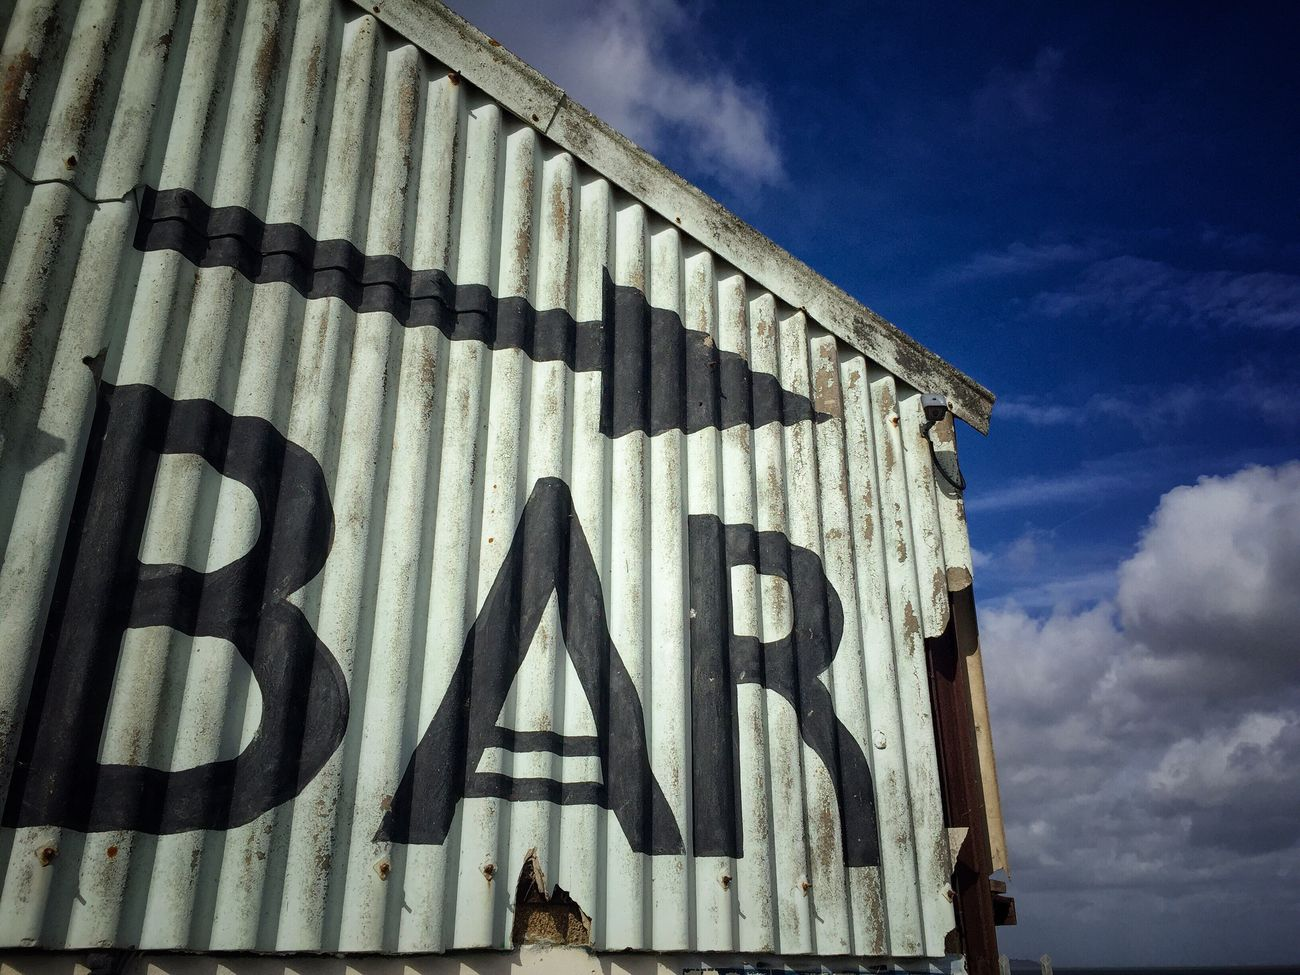 Bar Signs Signage Whitstable Bar Seaside Coast